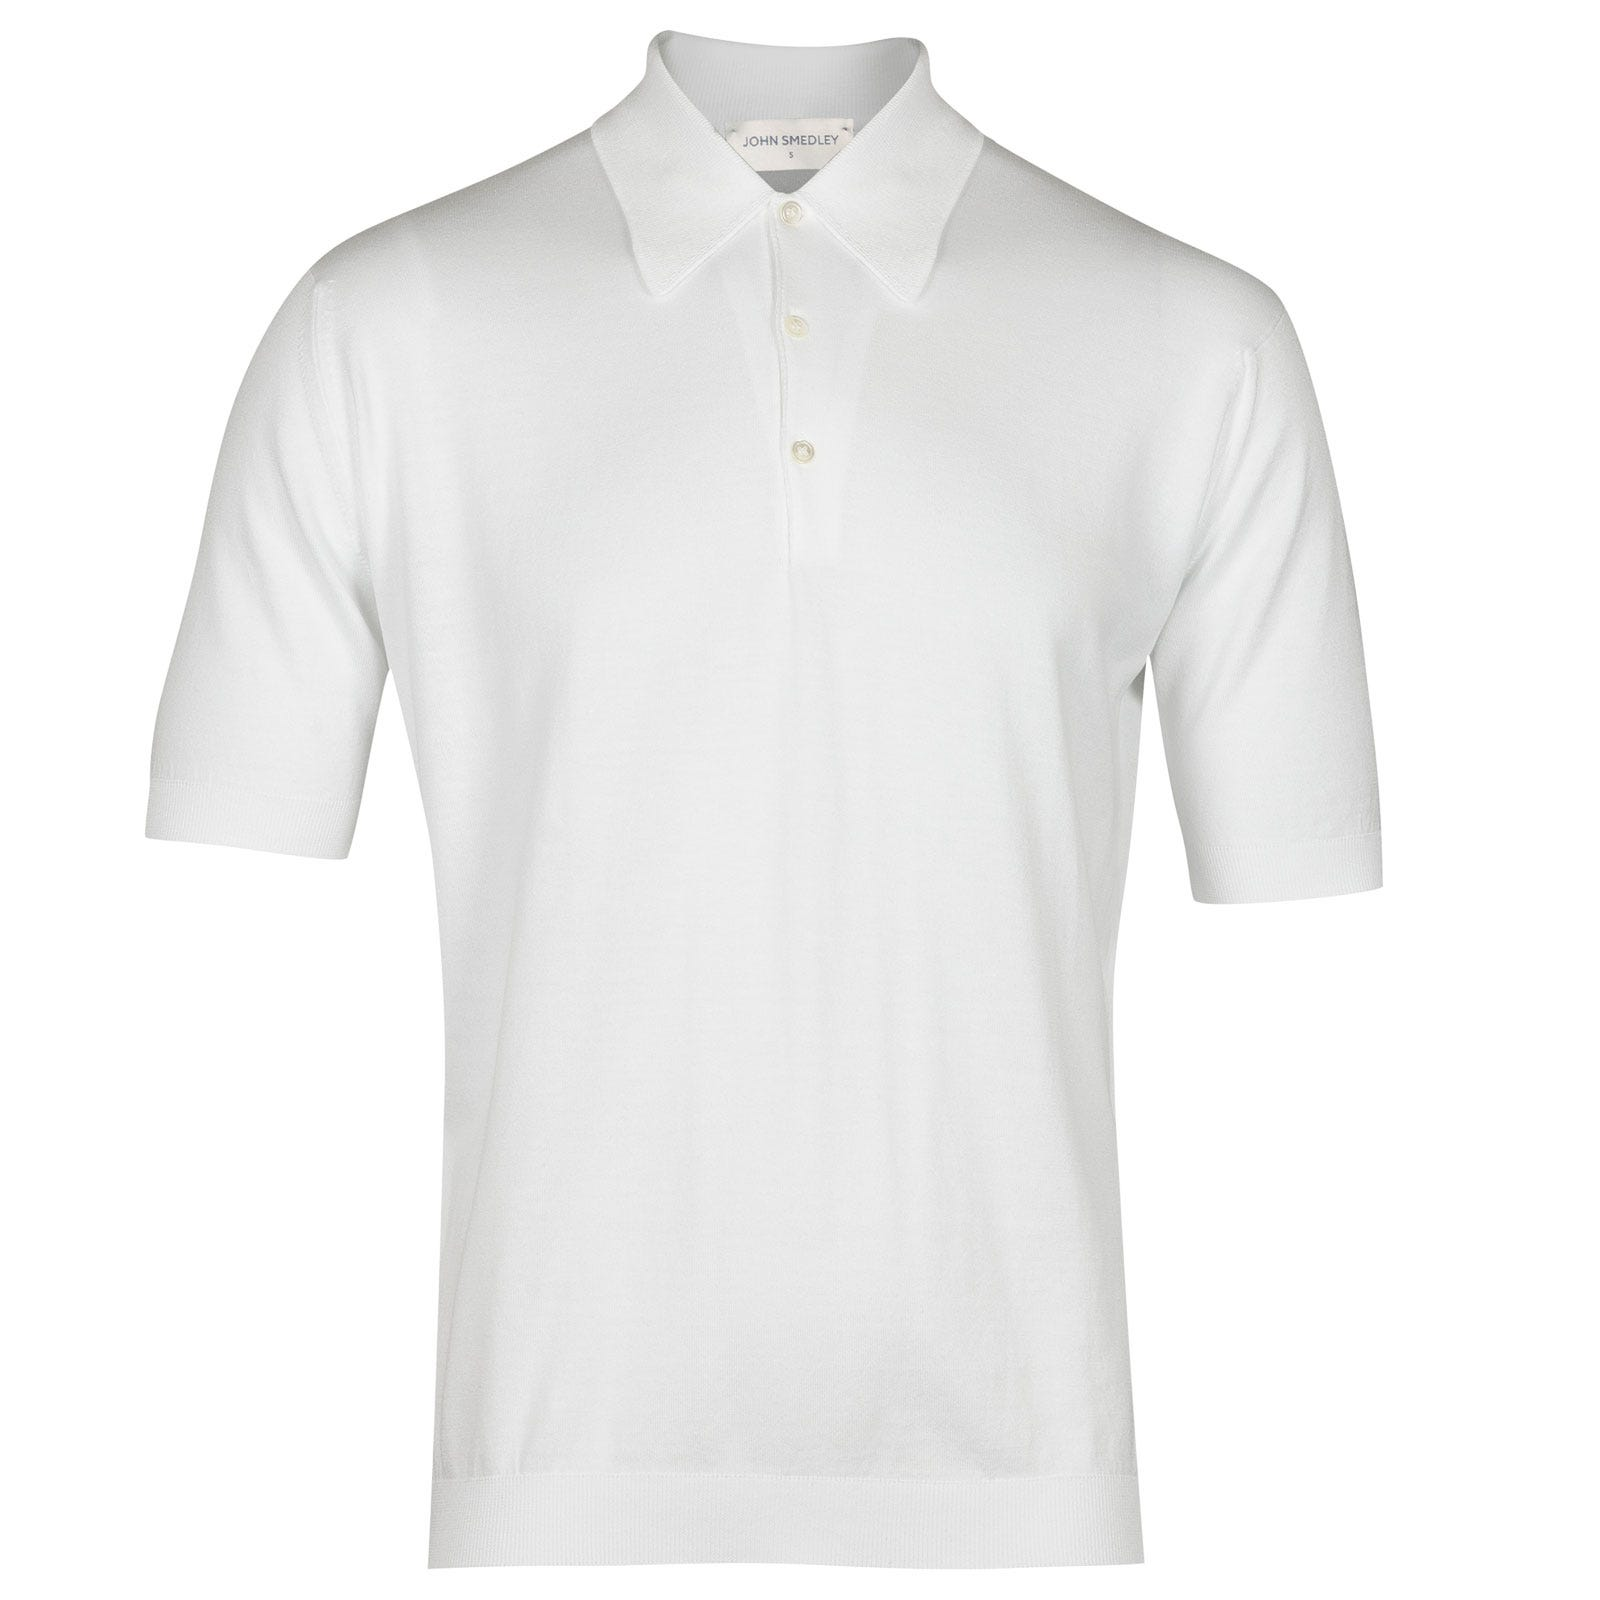 John Smedley Isis Sea Island Cotton Shirt in White-S